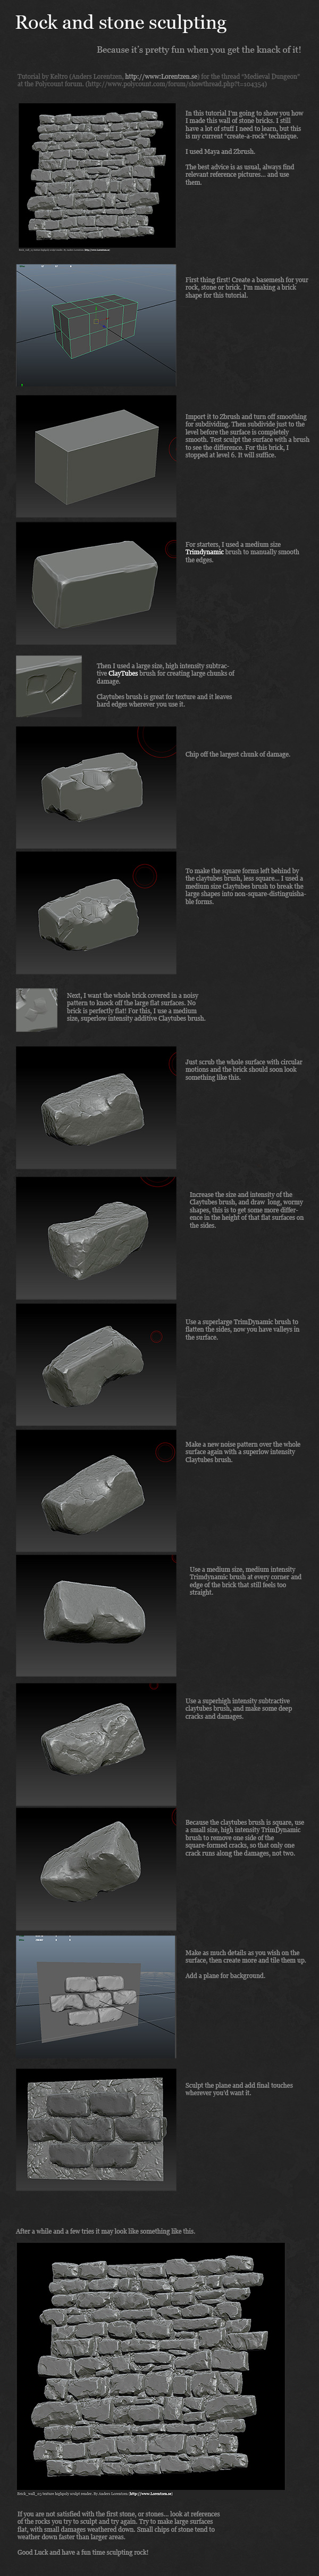 stone_workflow_tutorial_by_keltro.jpg